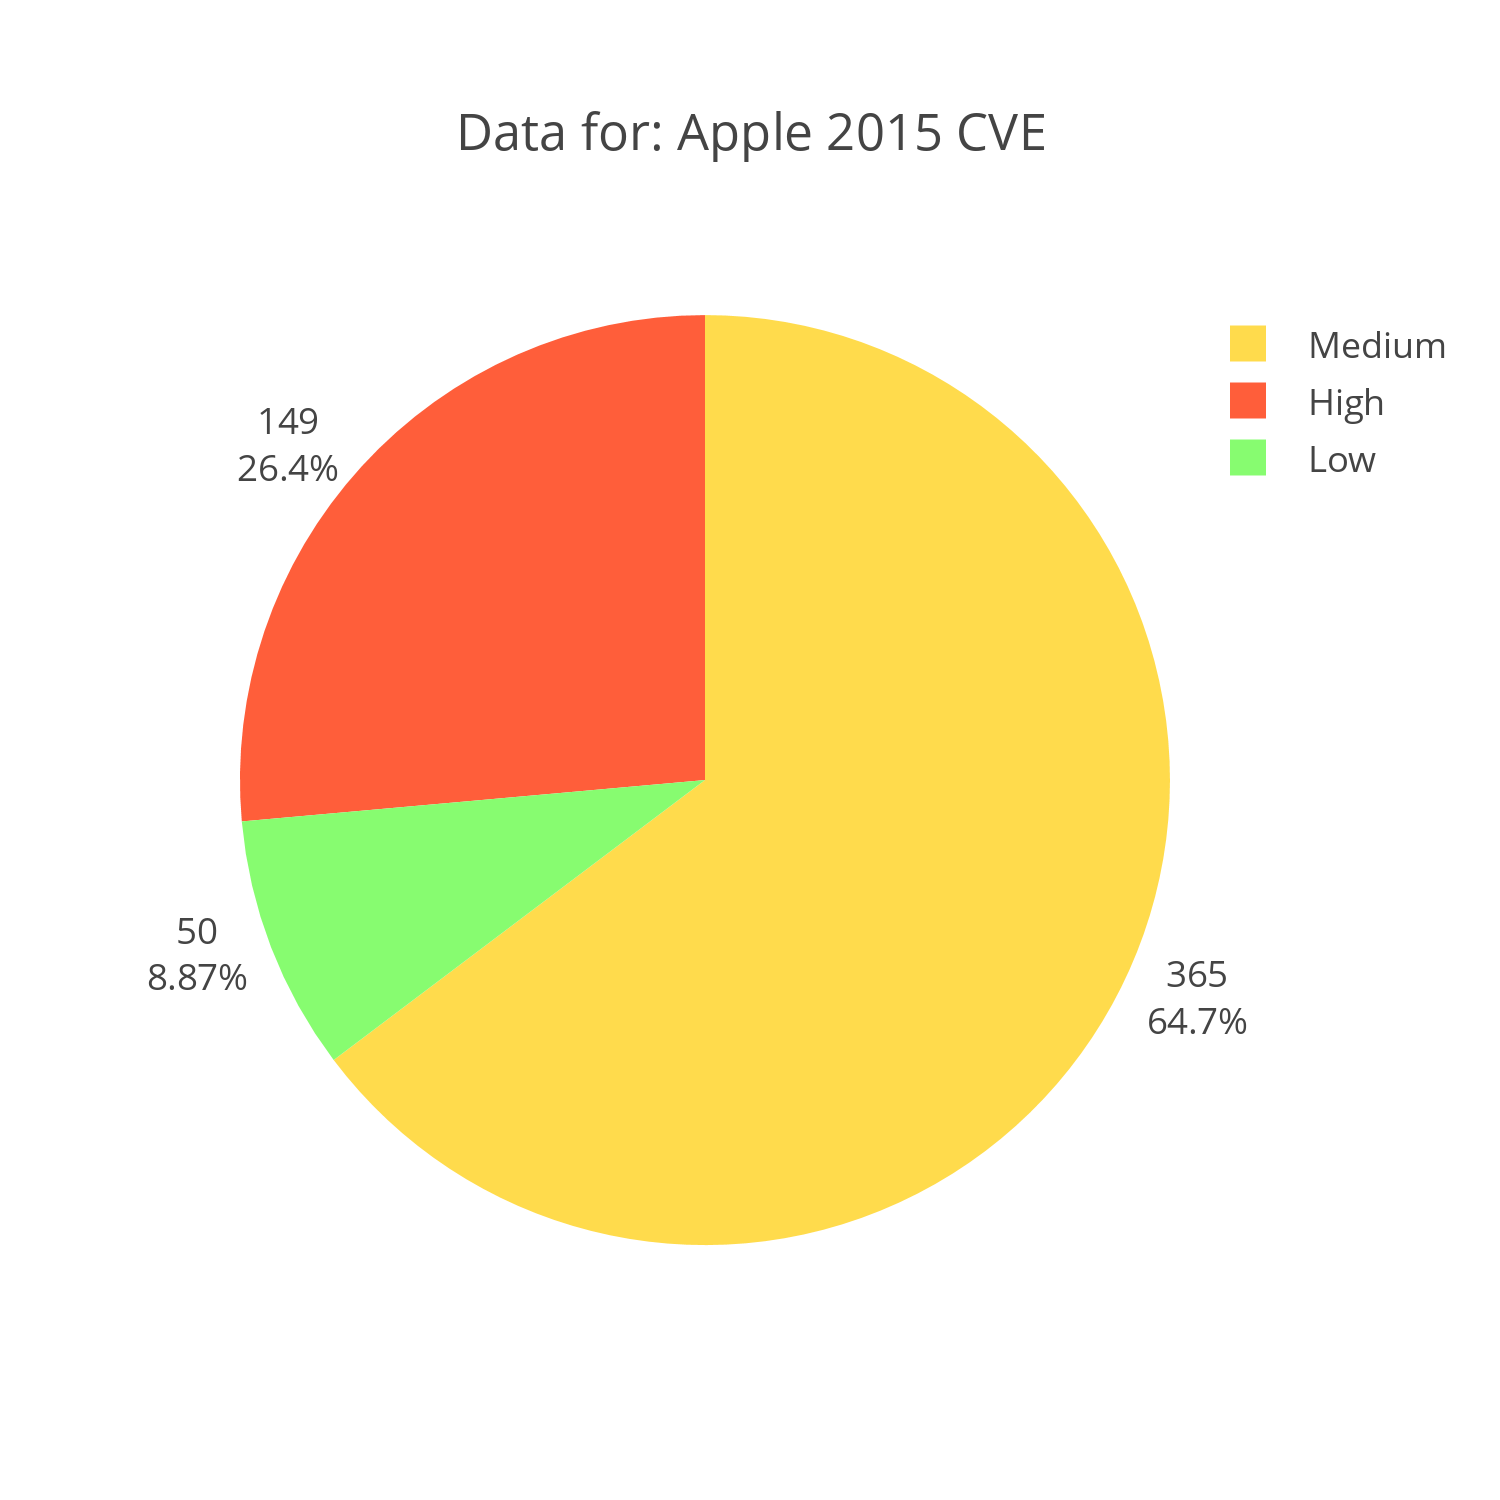 Apple CVE reports for 2015 distributed by severity